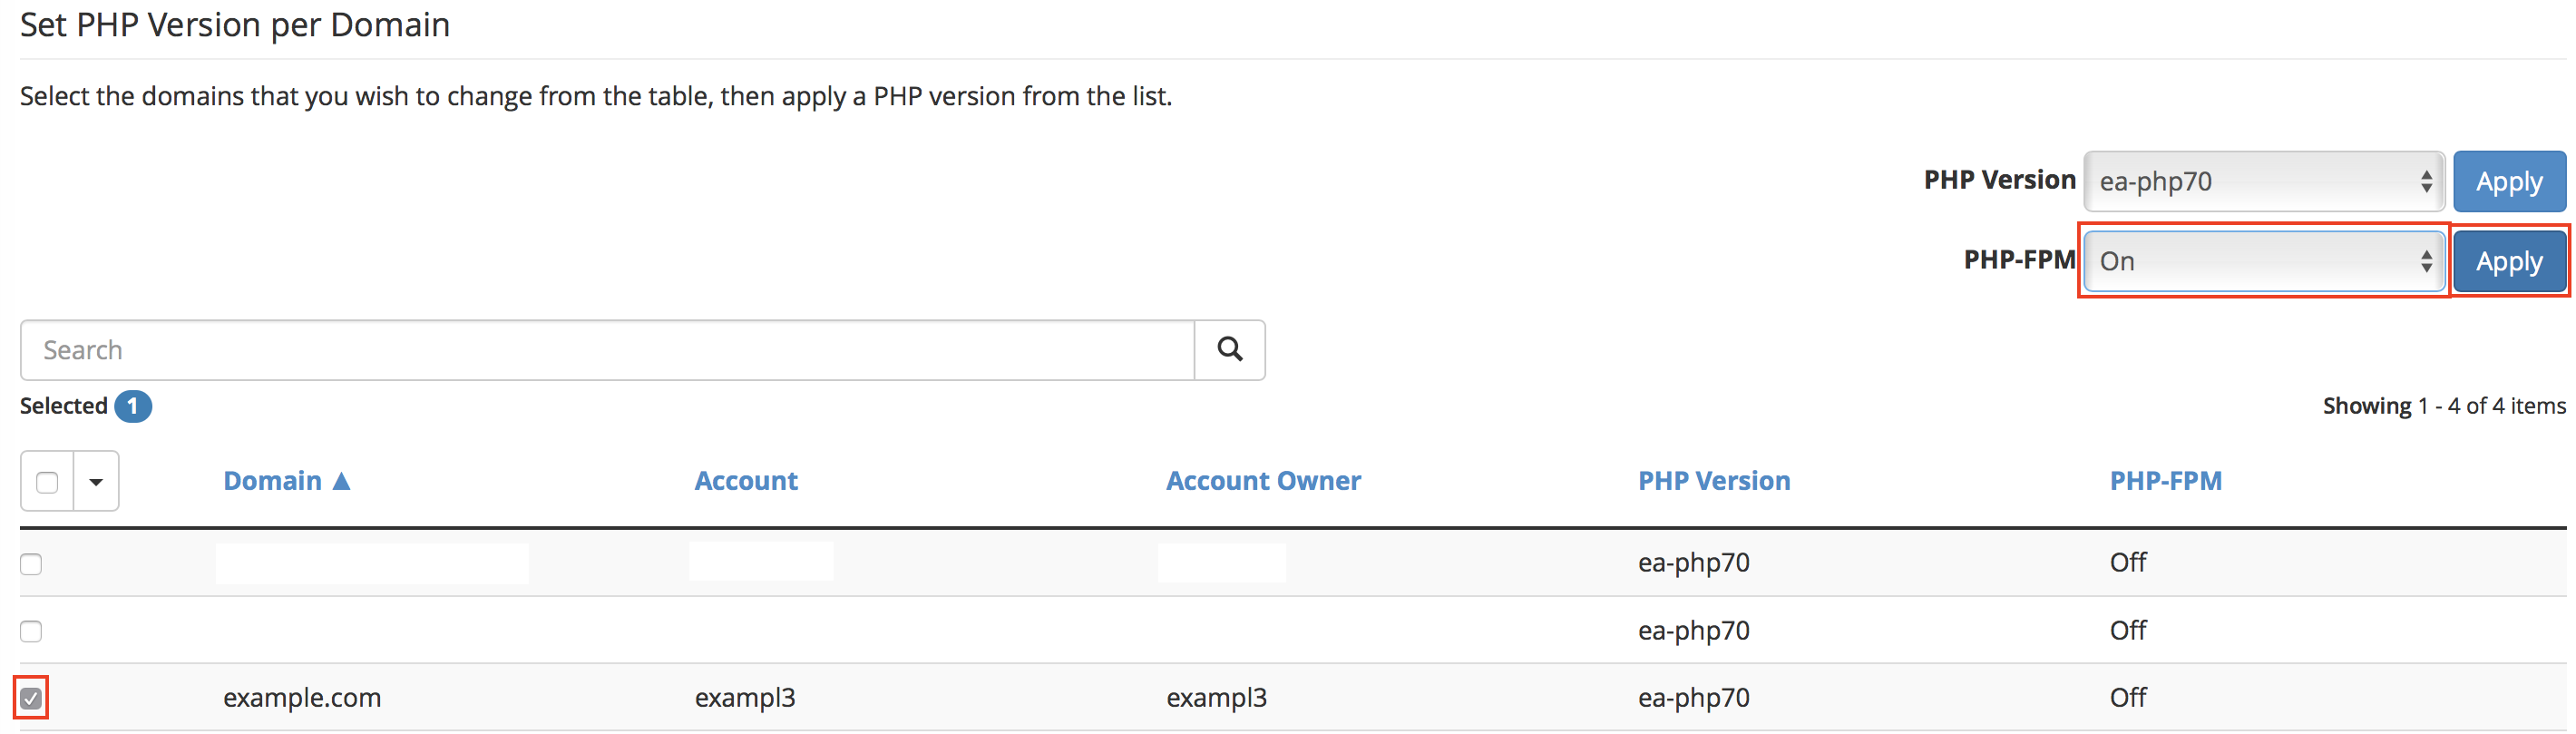 Set PHP Version per Domain with checkbox for domain: example.com selected, drop-down menu for PHP-FPM On option selected, and Apply button highlighted.